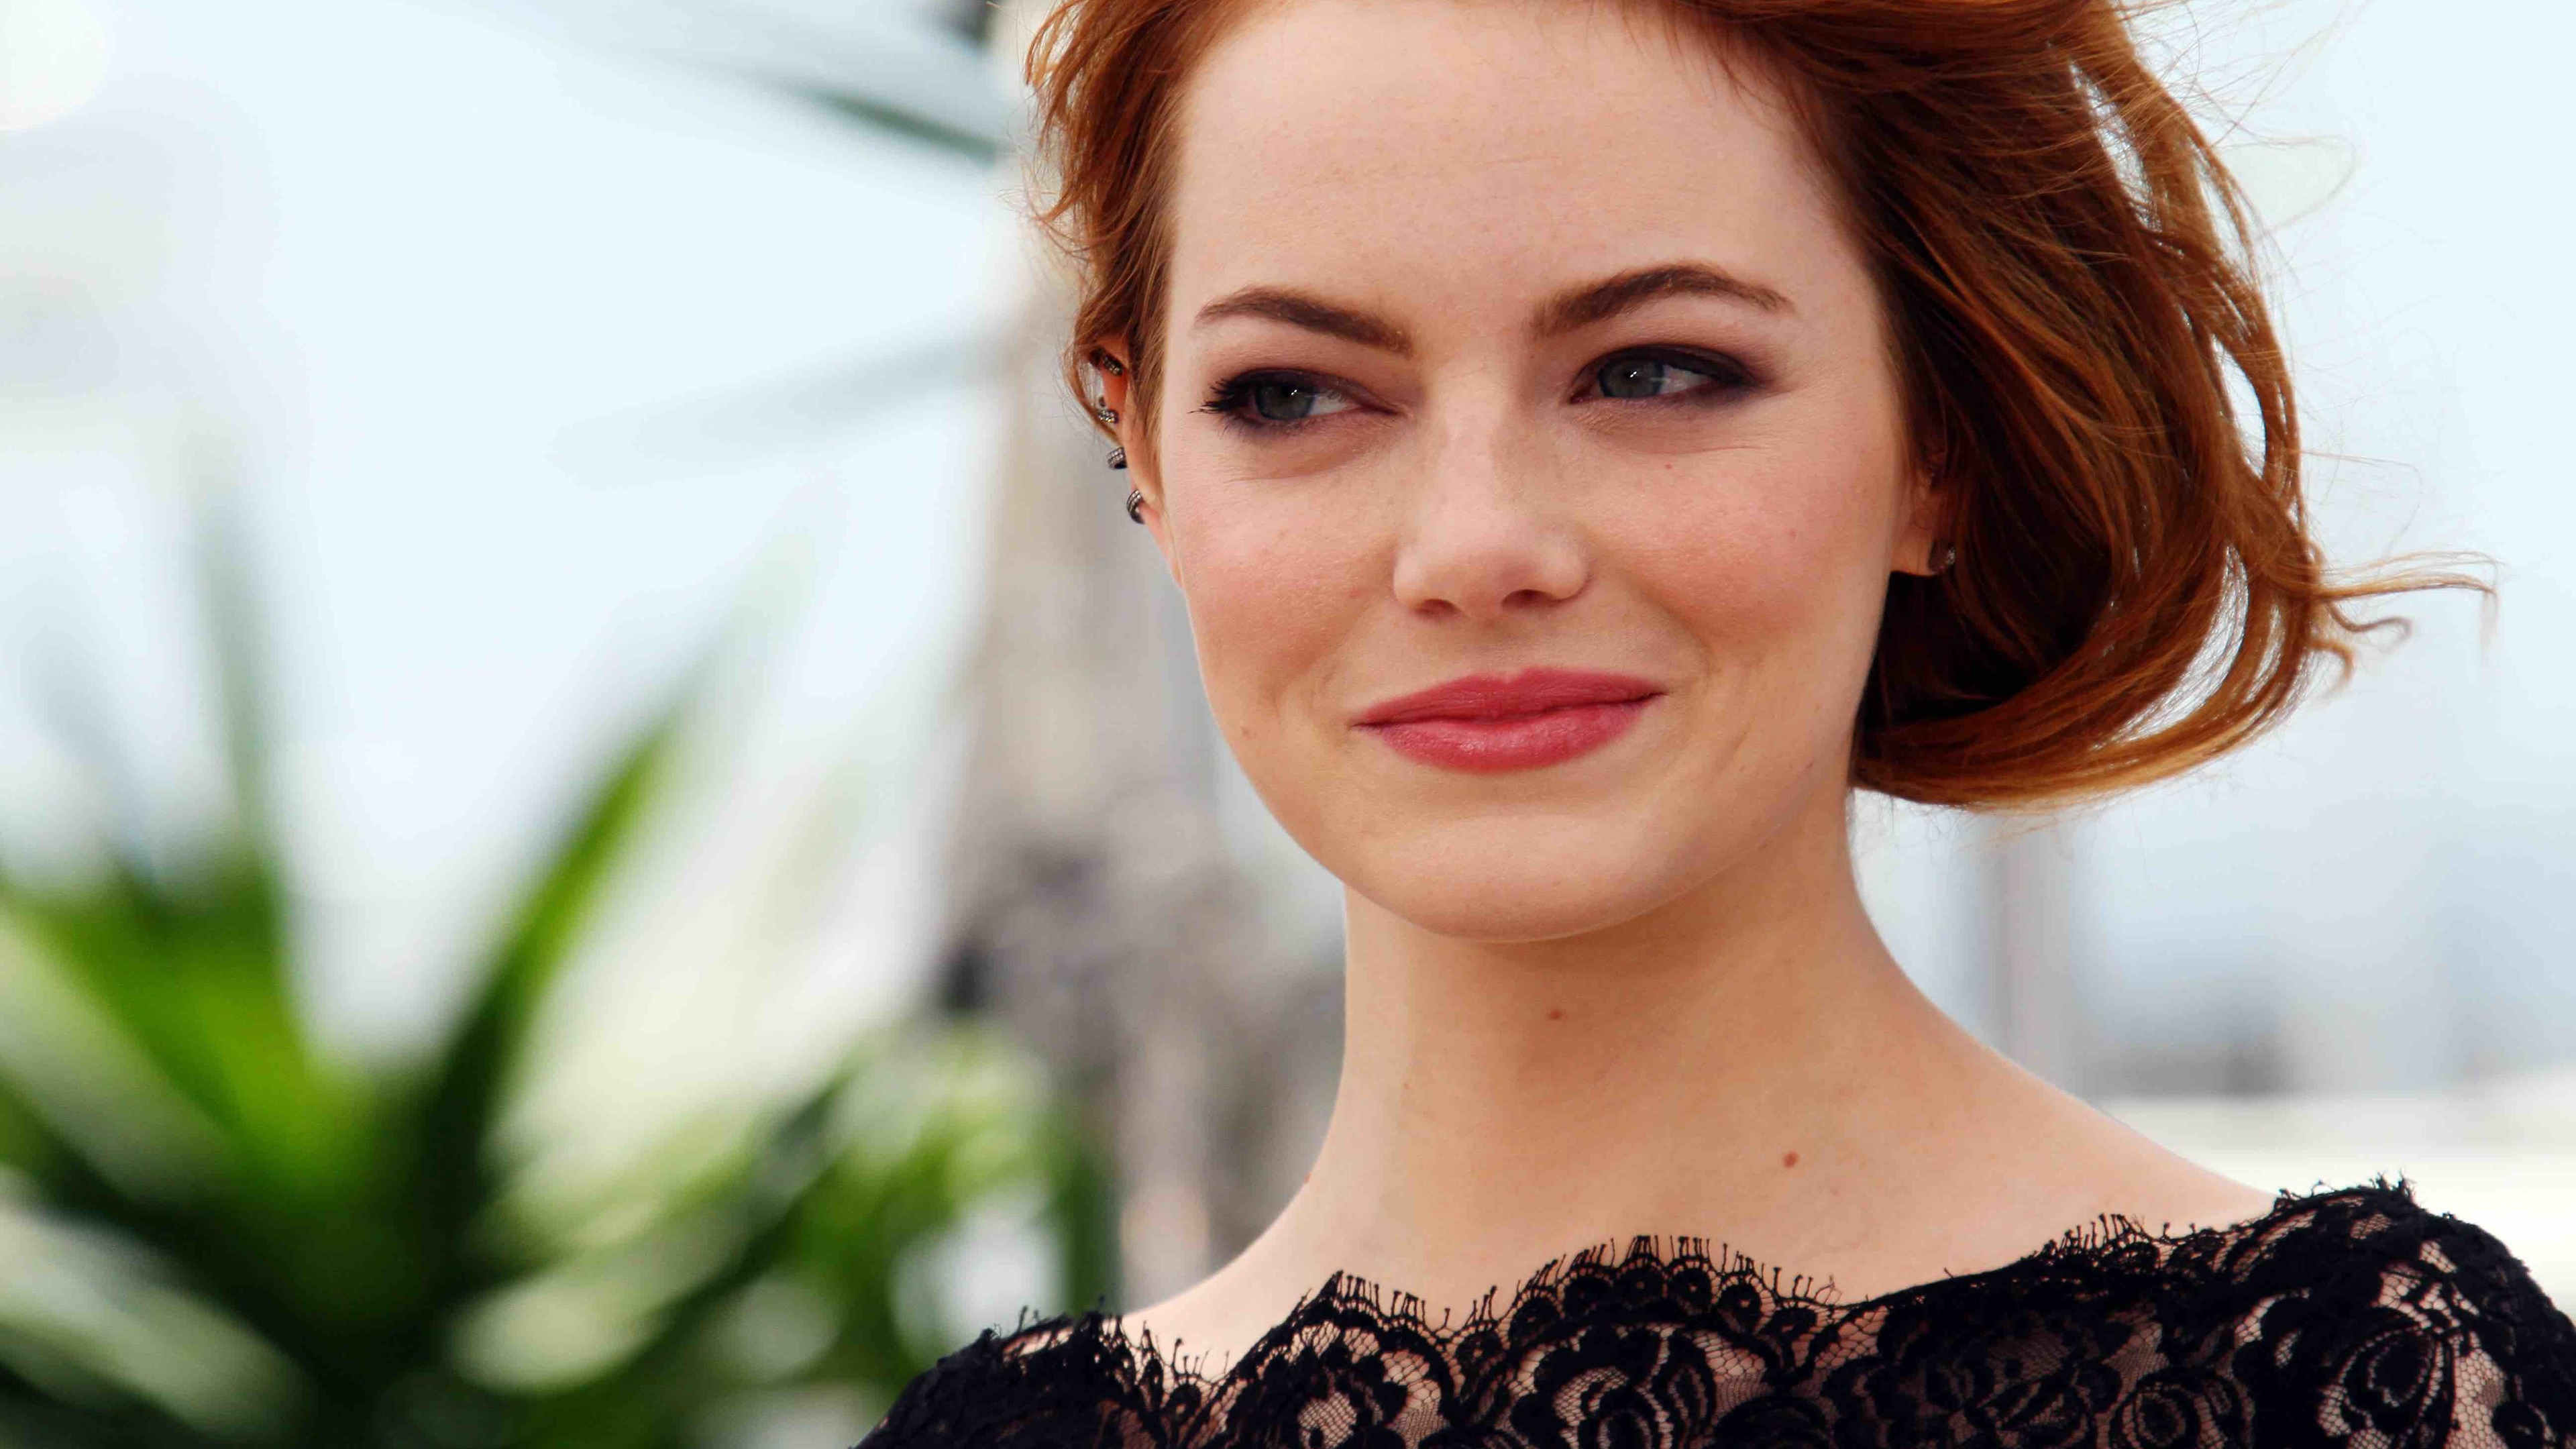 emma stone cute smile 5k 1536861649 - Emma Stone Cute Smile 5k - hd-wallpapers, girls wallpapers, emma stone wallpapers, celebrities wallpapers, 5k wallpapers, 4k-wallpapers